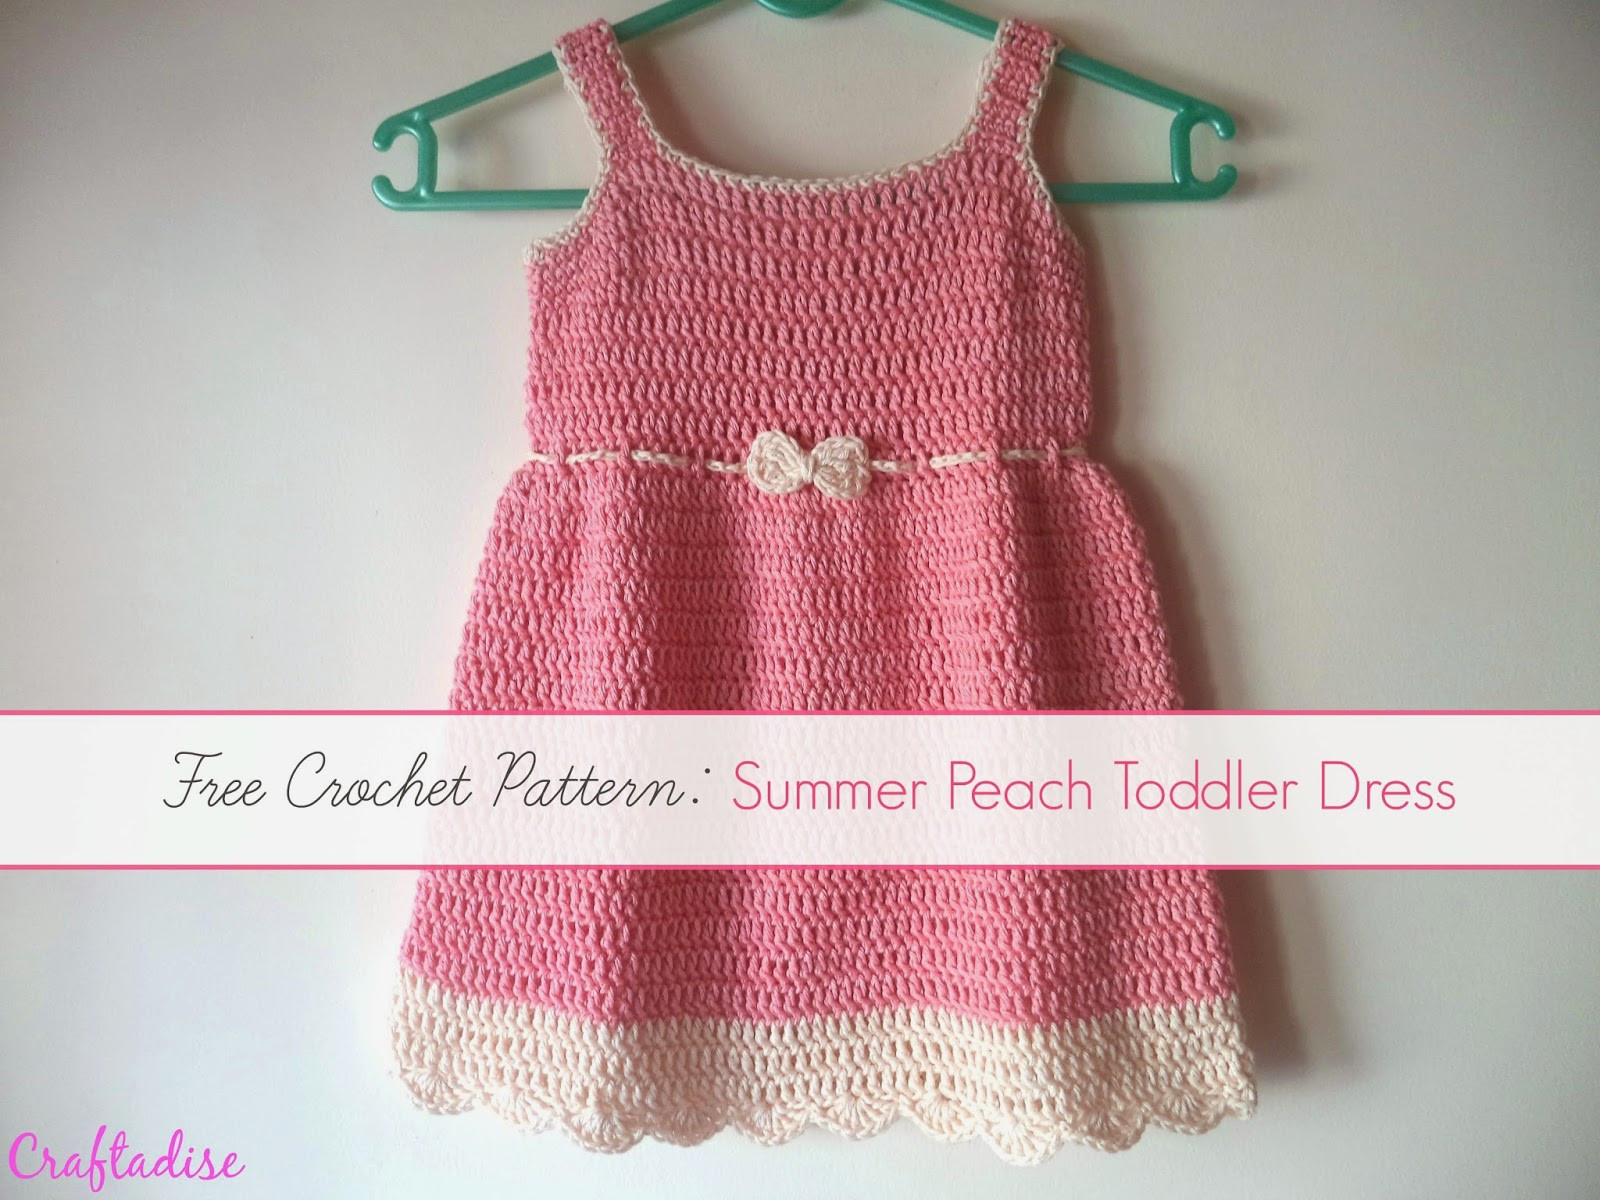 New Made In Craftadise Free Crochet toddler Dress Patterns Of Delightful 45 Pics Free Crochet toddler Dress Patterns